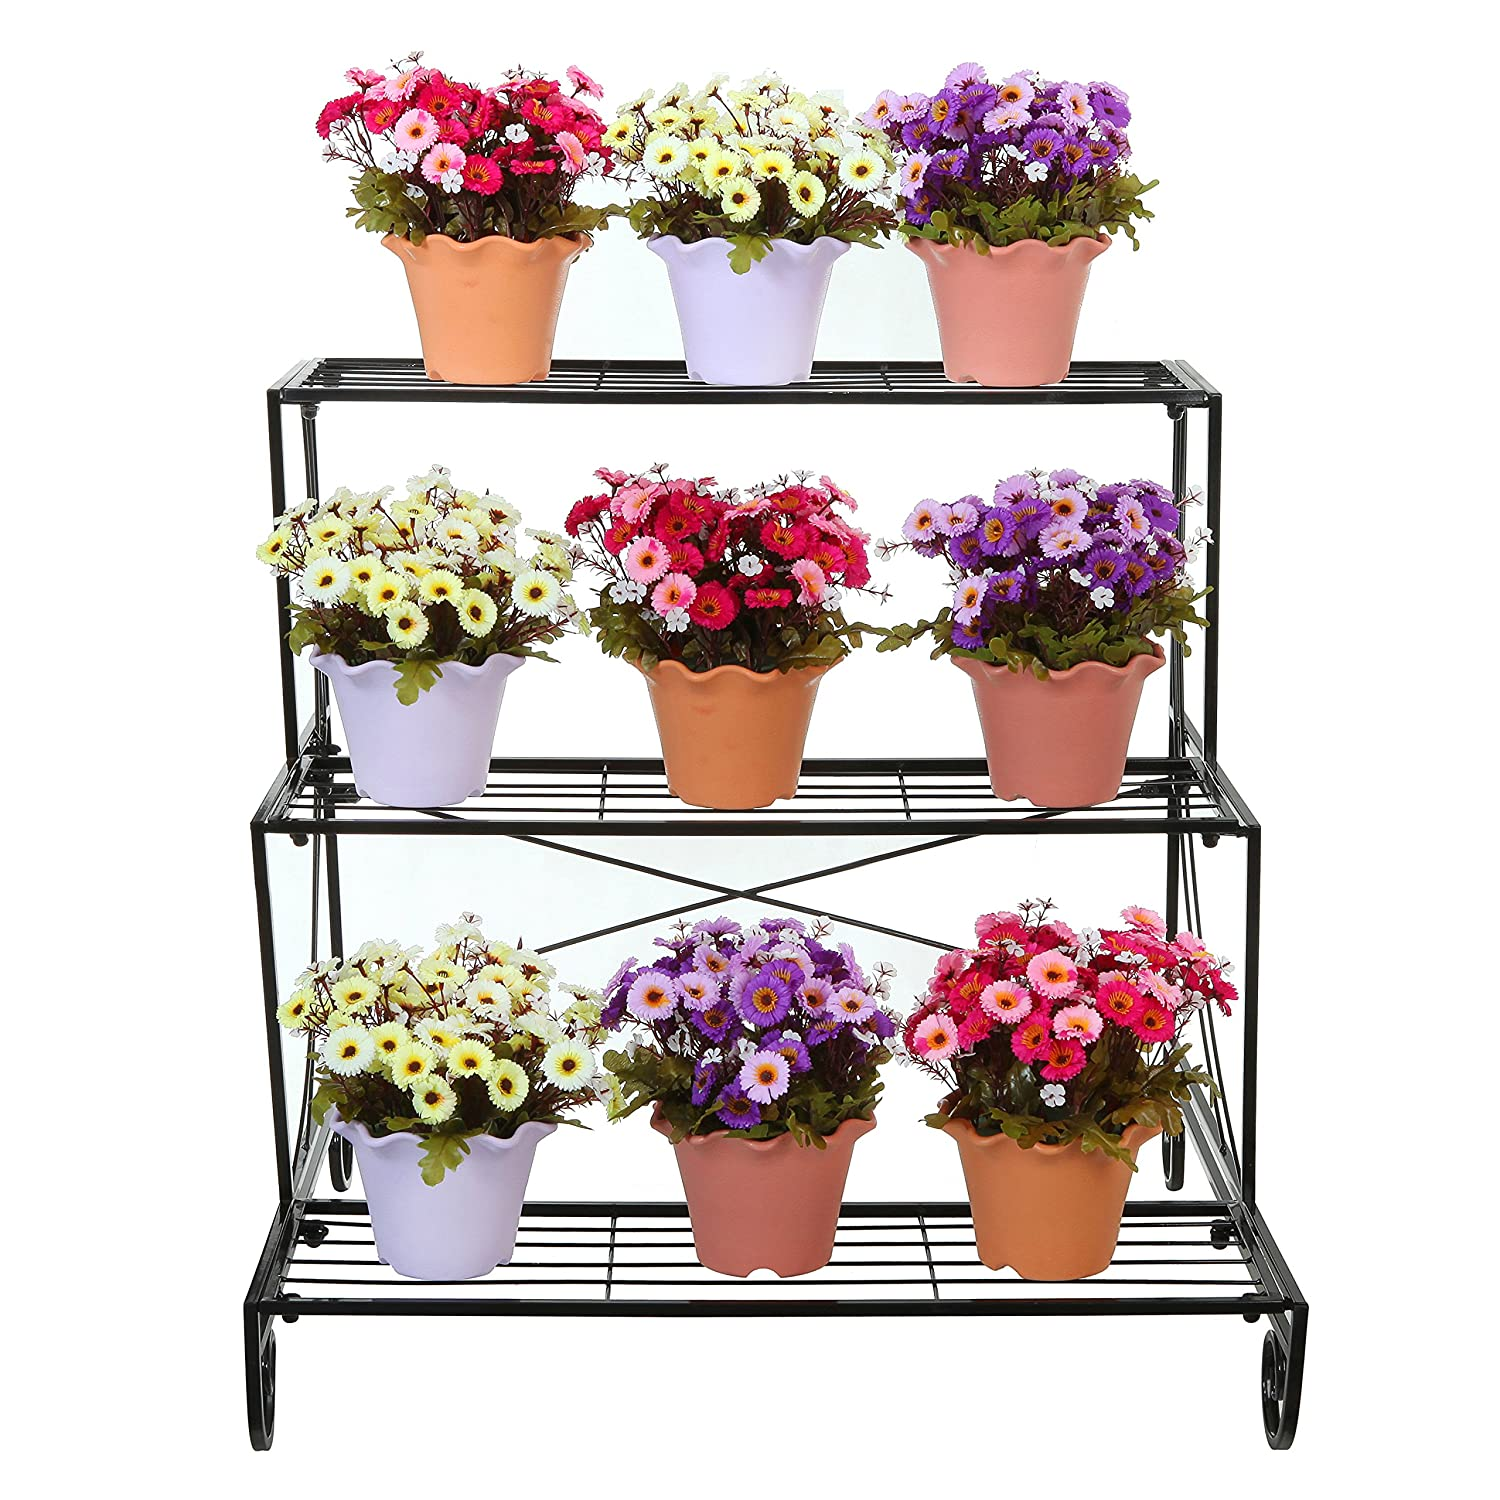 3 Tier Decorative Black Metal Plant Stand Planter Holder